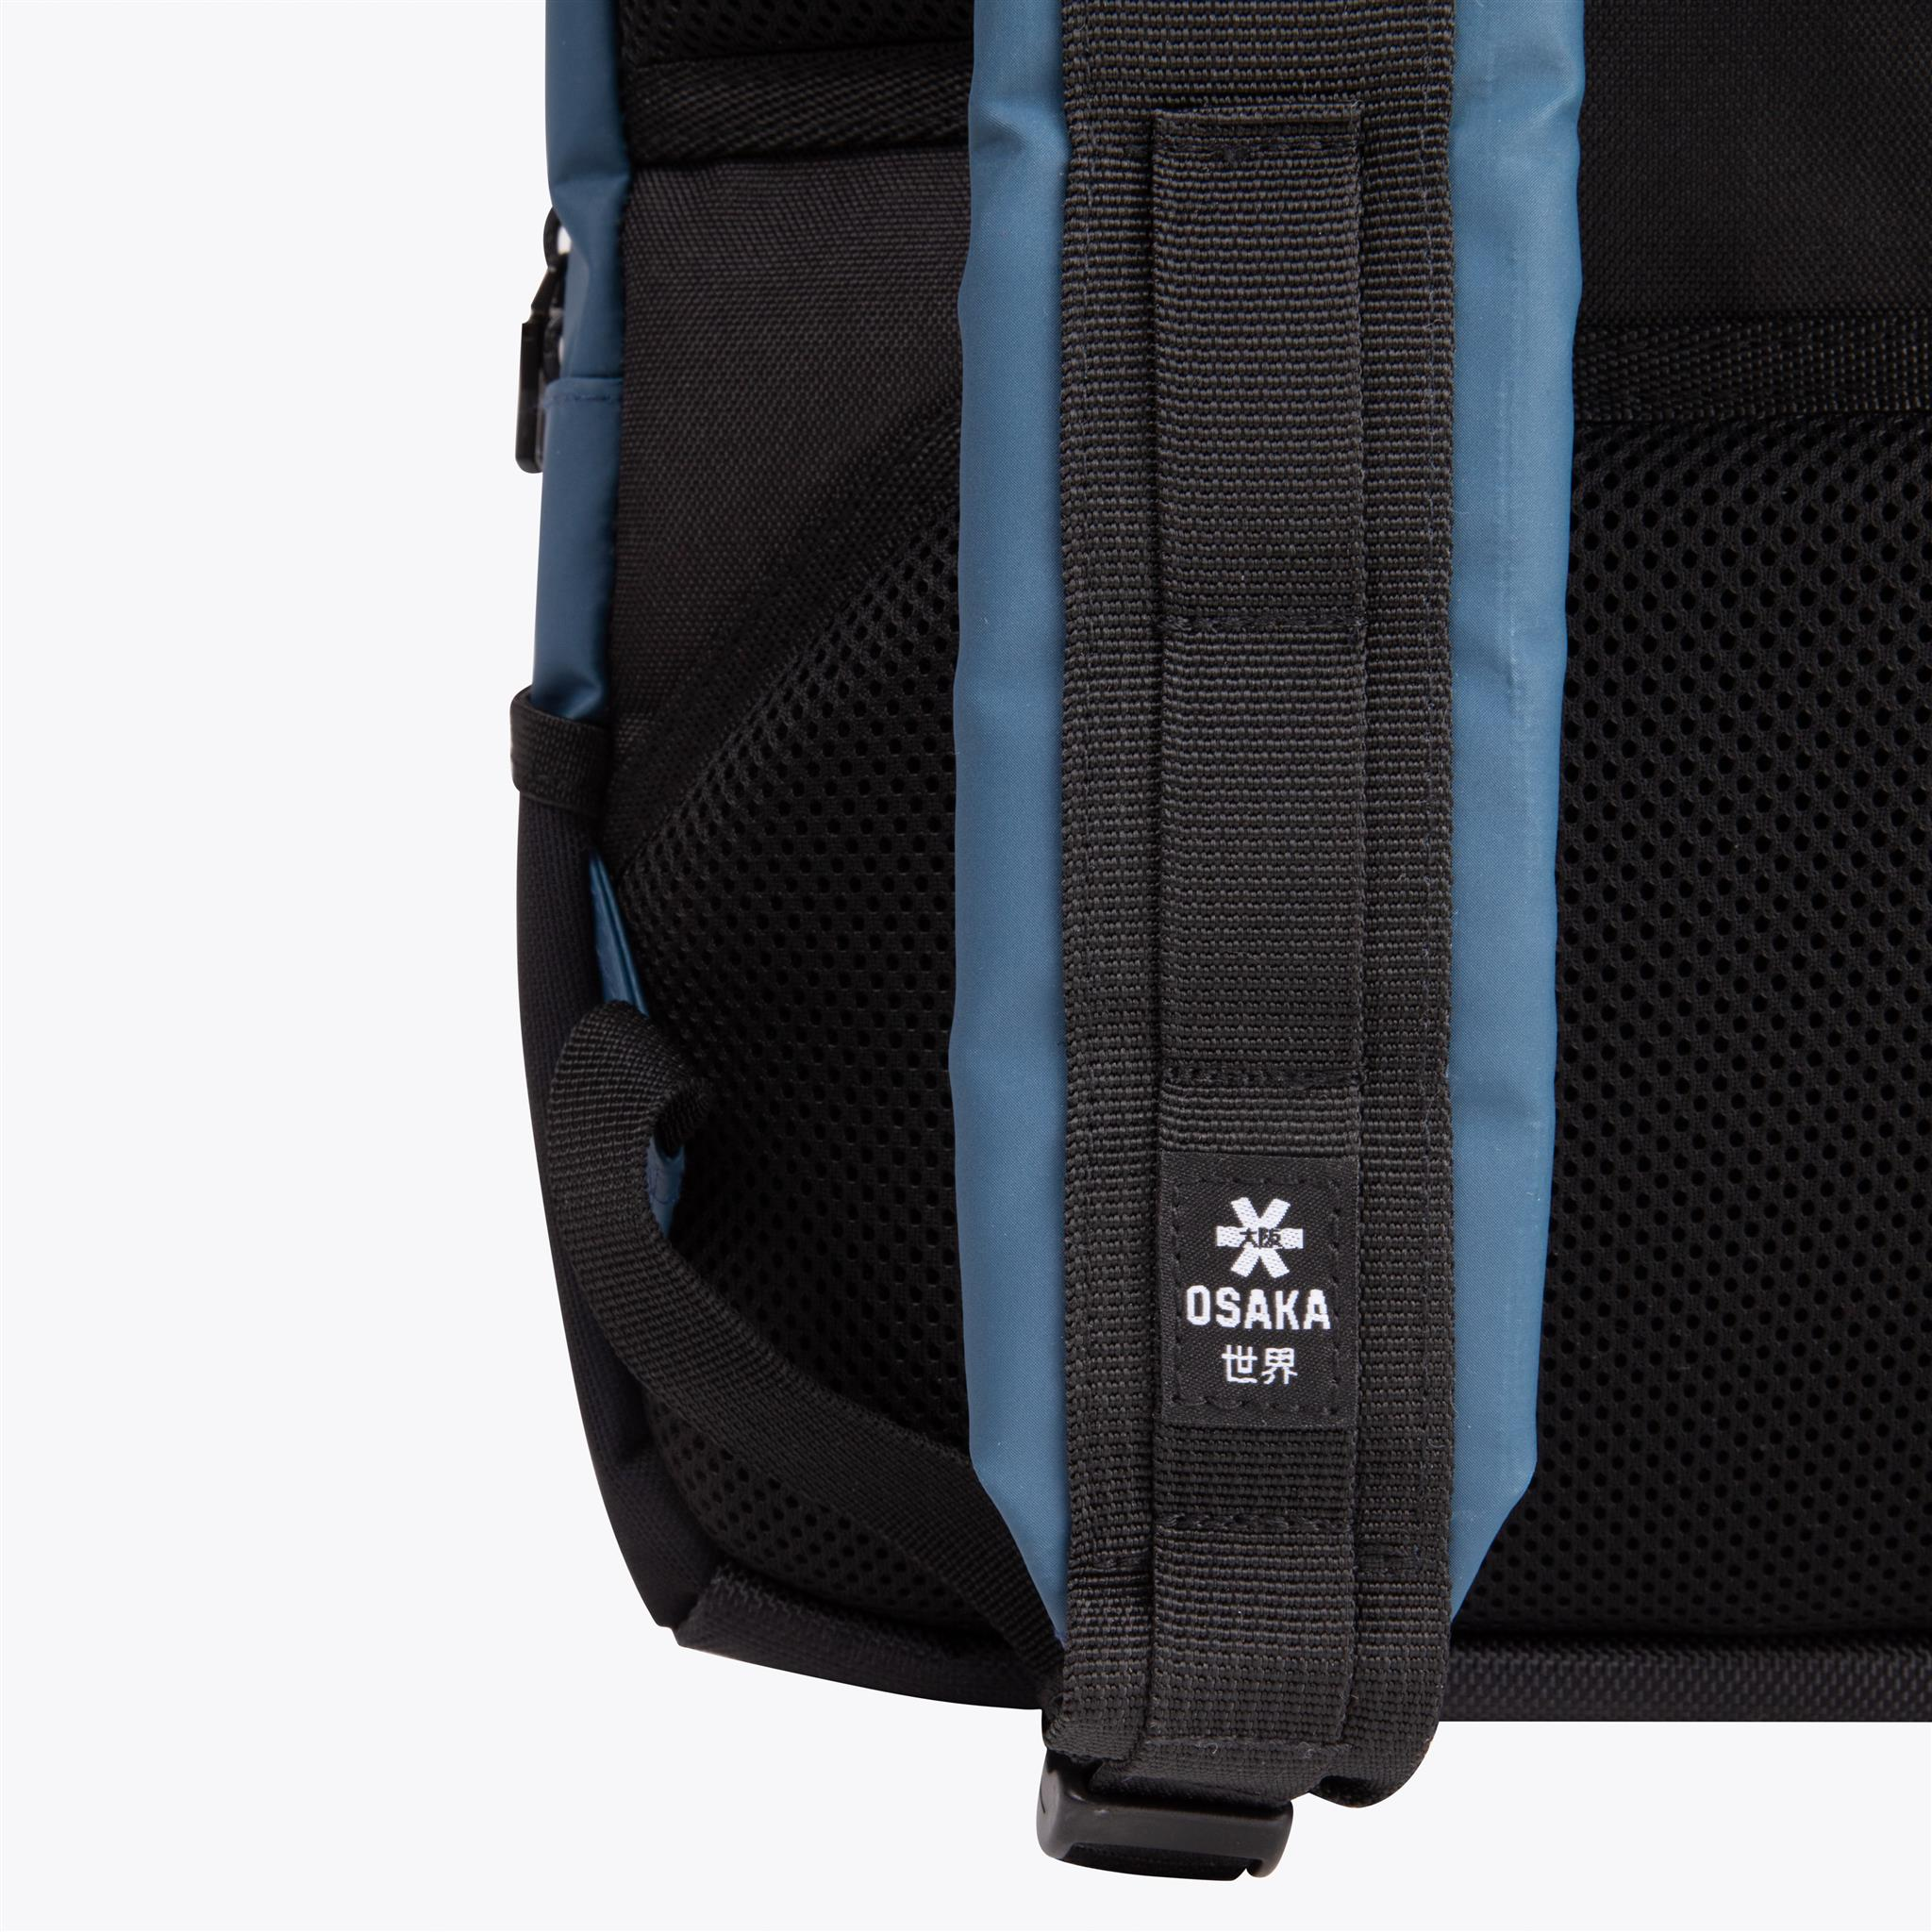 Pro Tour Large Backpack - Galaxy Navy